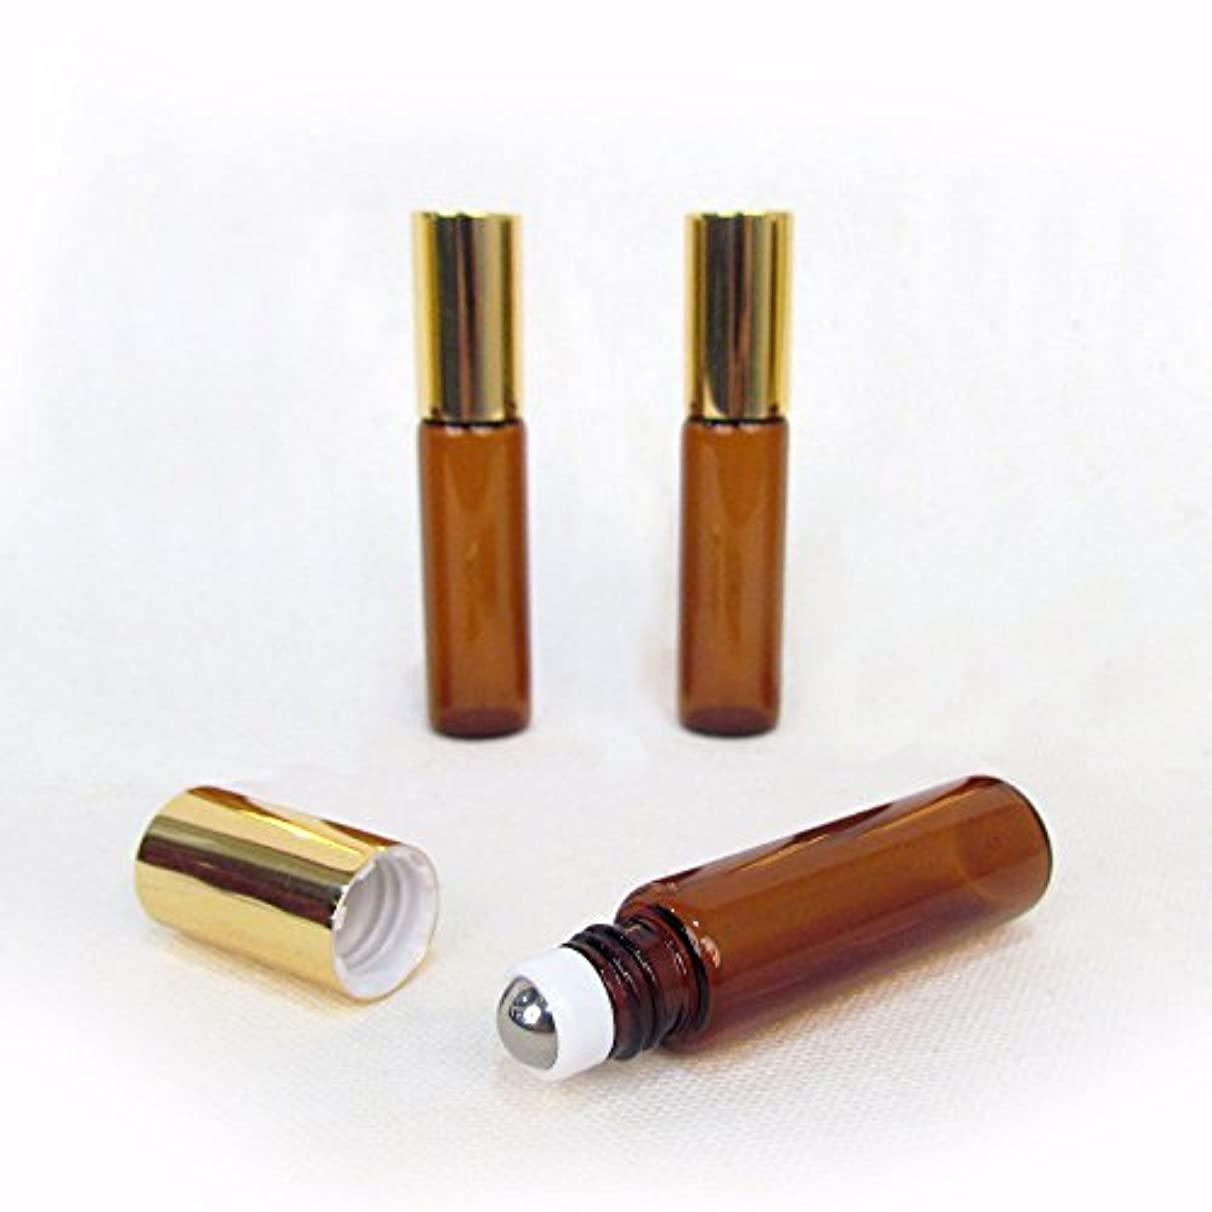 ロードされたいらいらする透けるSet of 3-5ml Brown Amber Glass Roll On Bottle With Stainless Steel Ball for Essential Oils by Rivertree Life [...